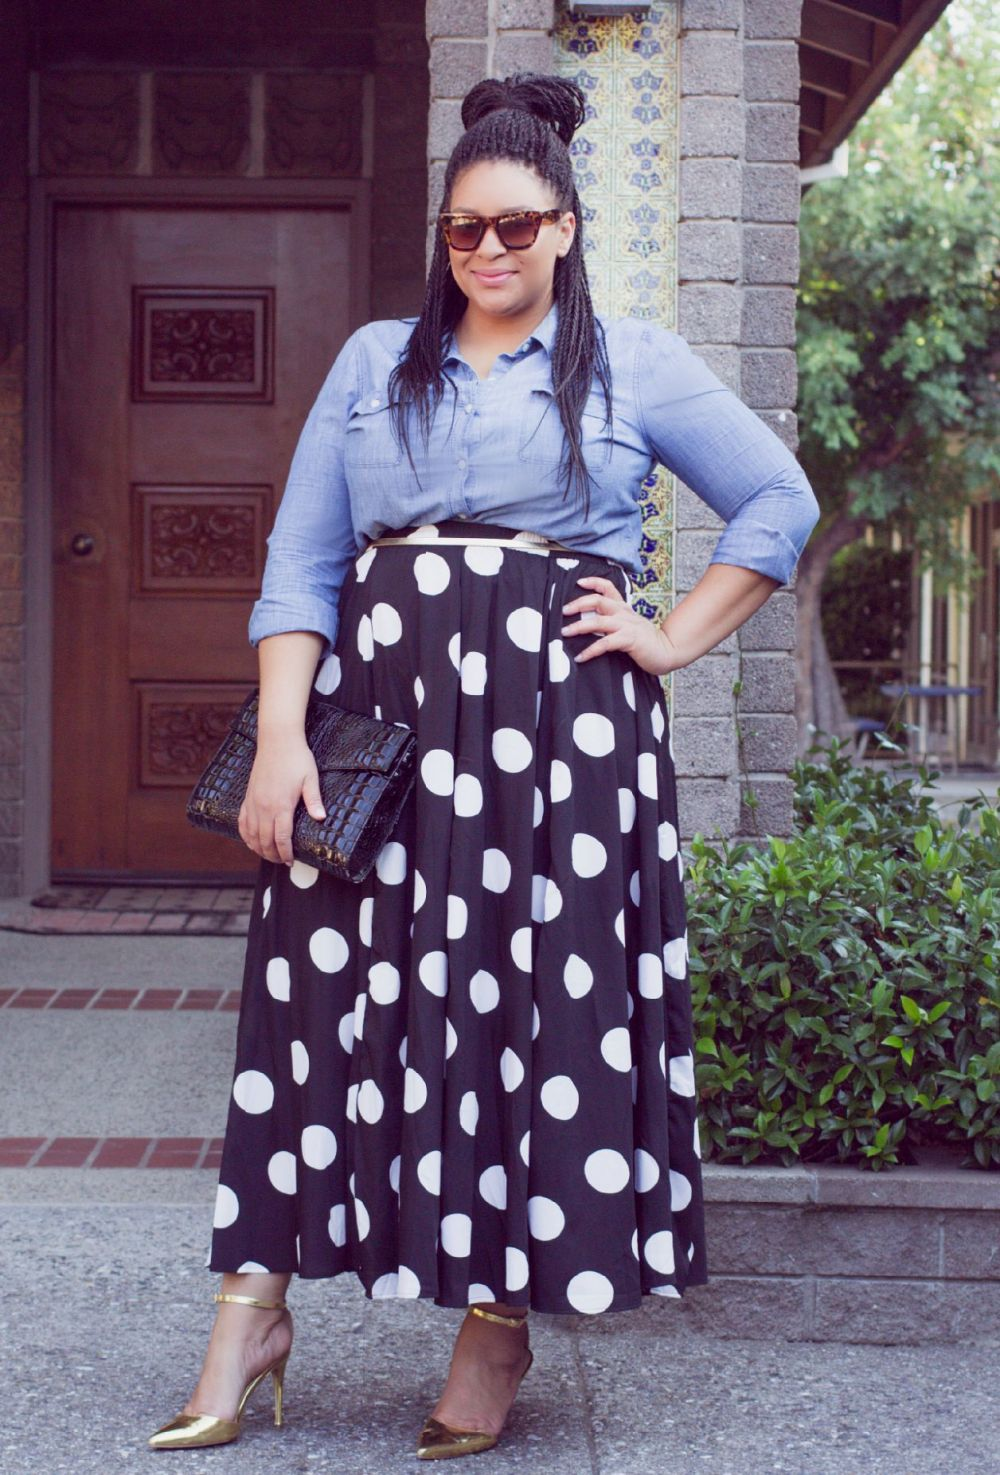 Resultado de imagen de POLKADOT DRESS OVER DENIM